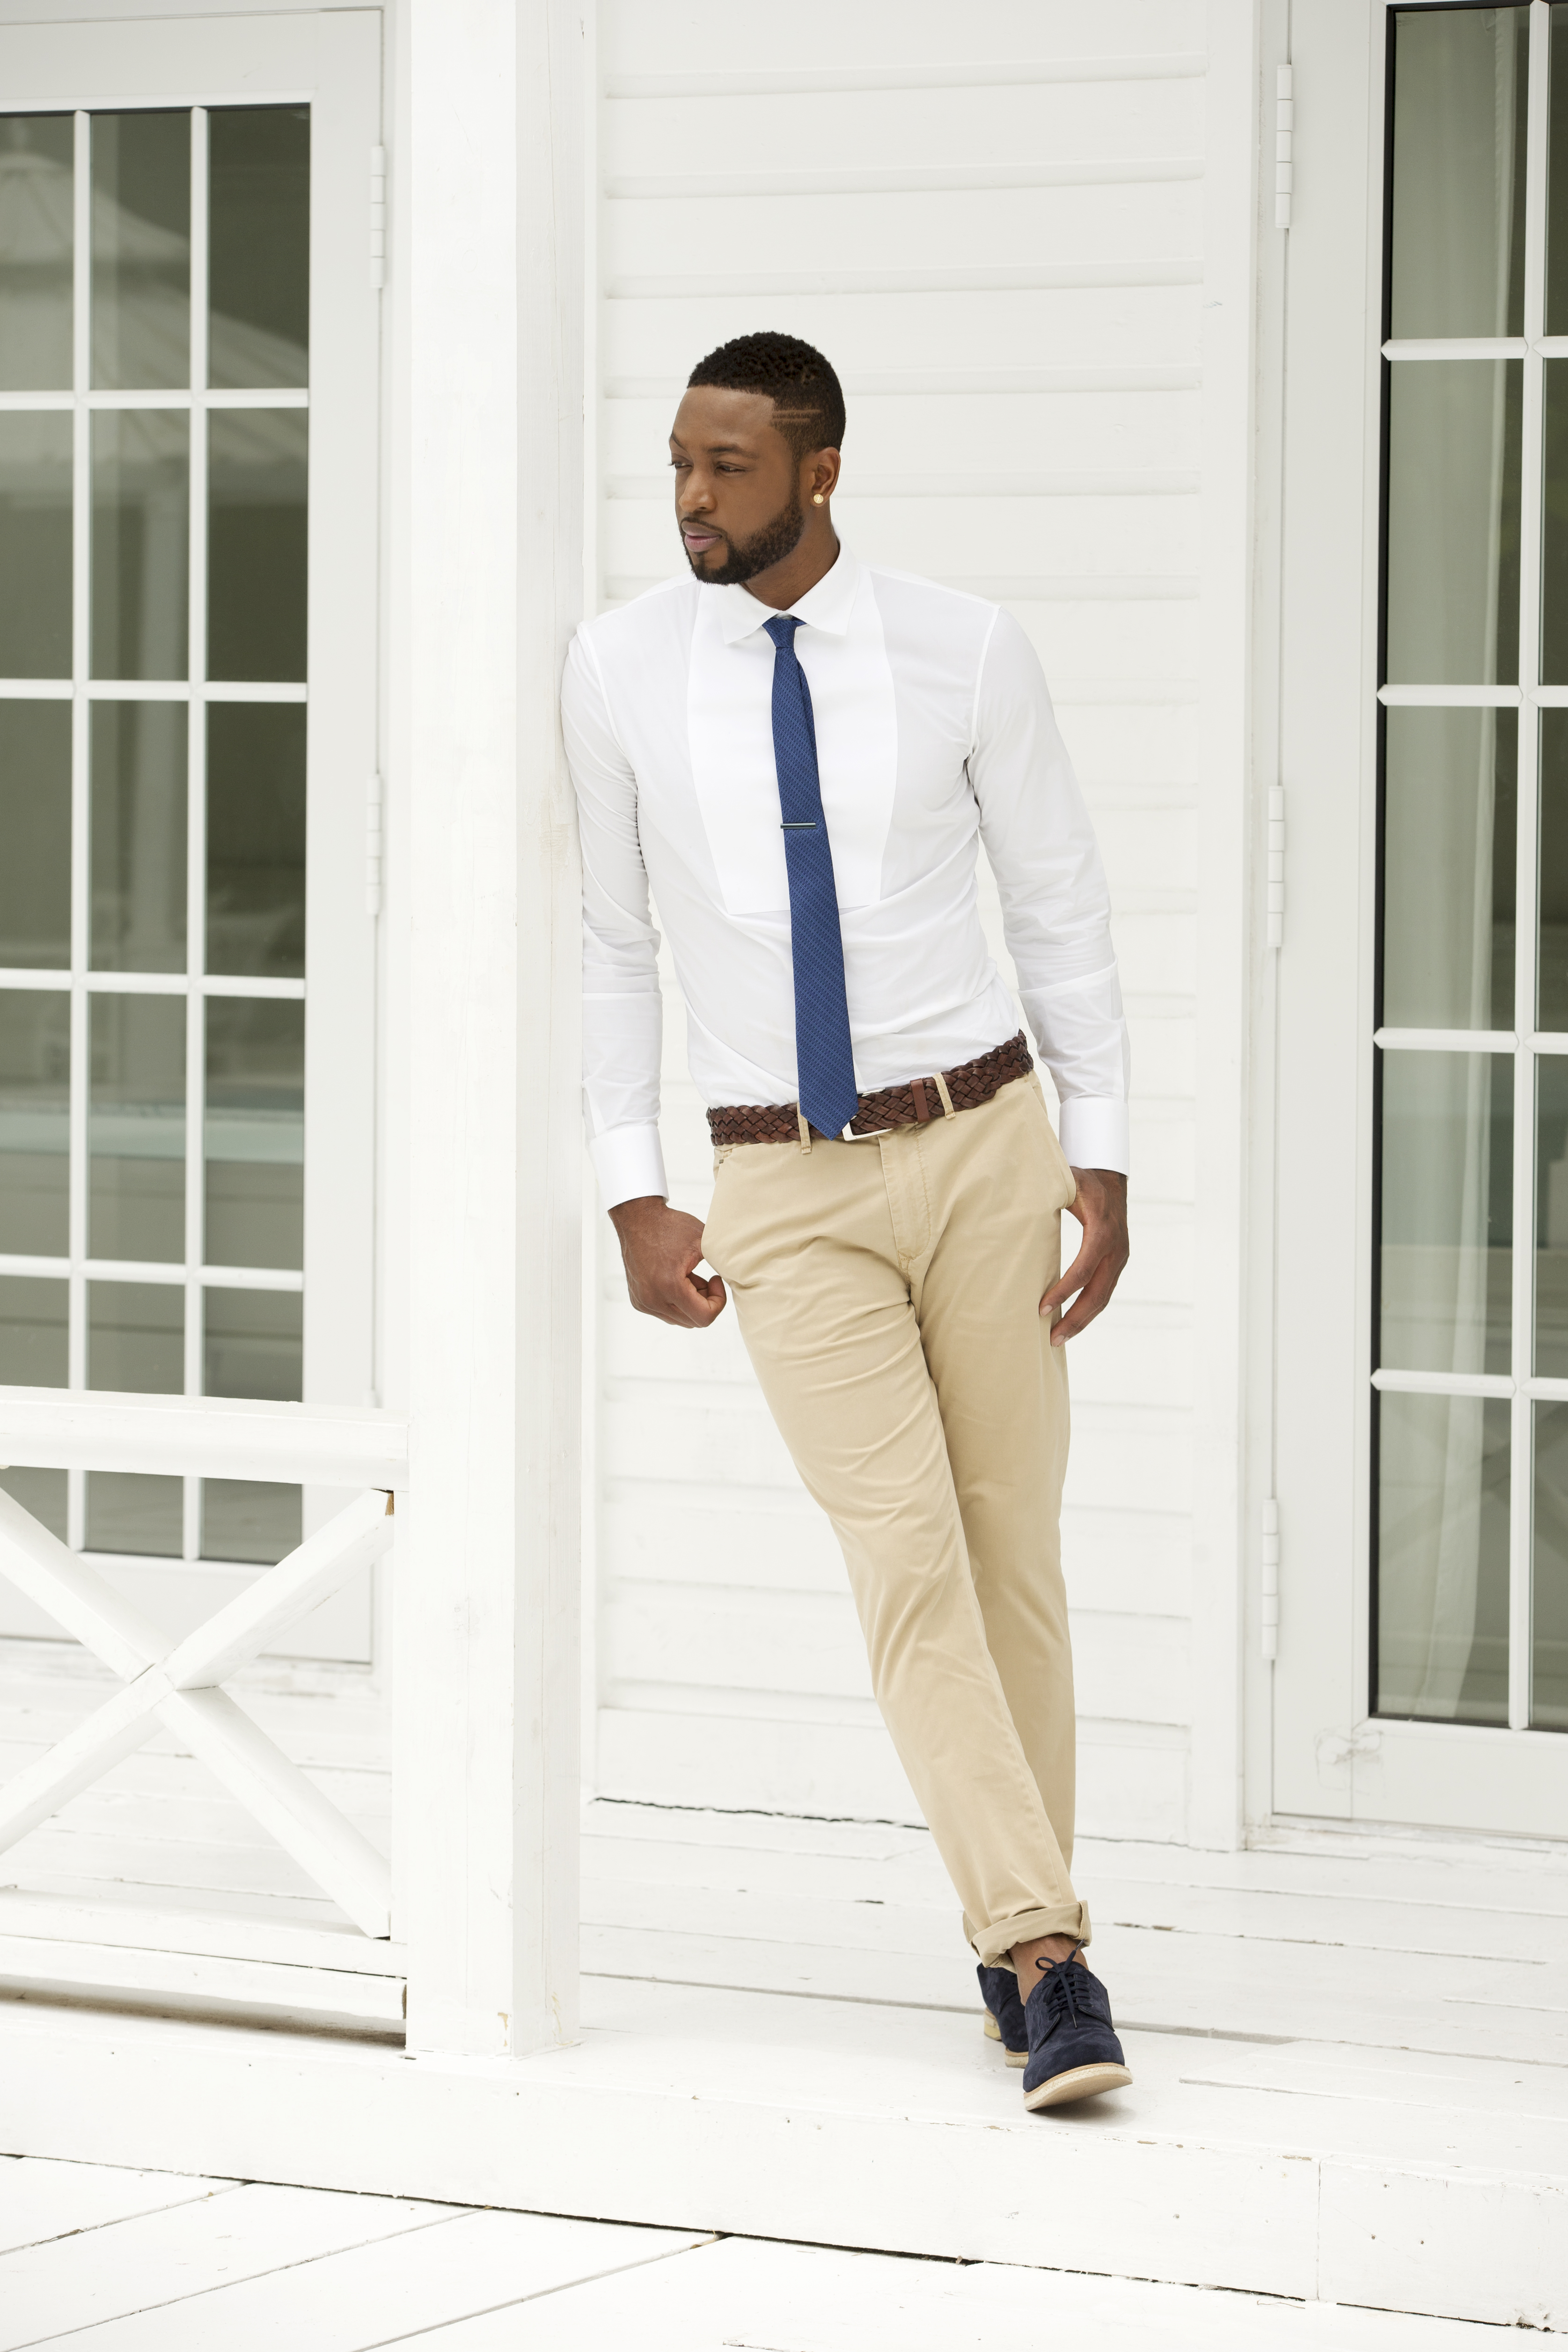 Dwayne Wade for The Tie Bar.